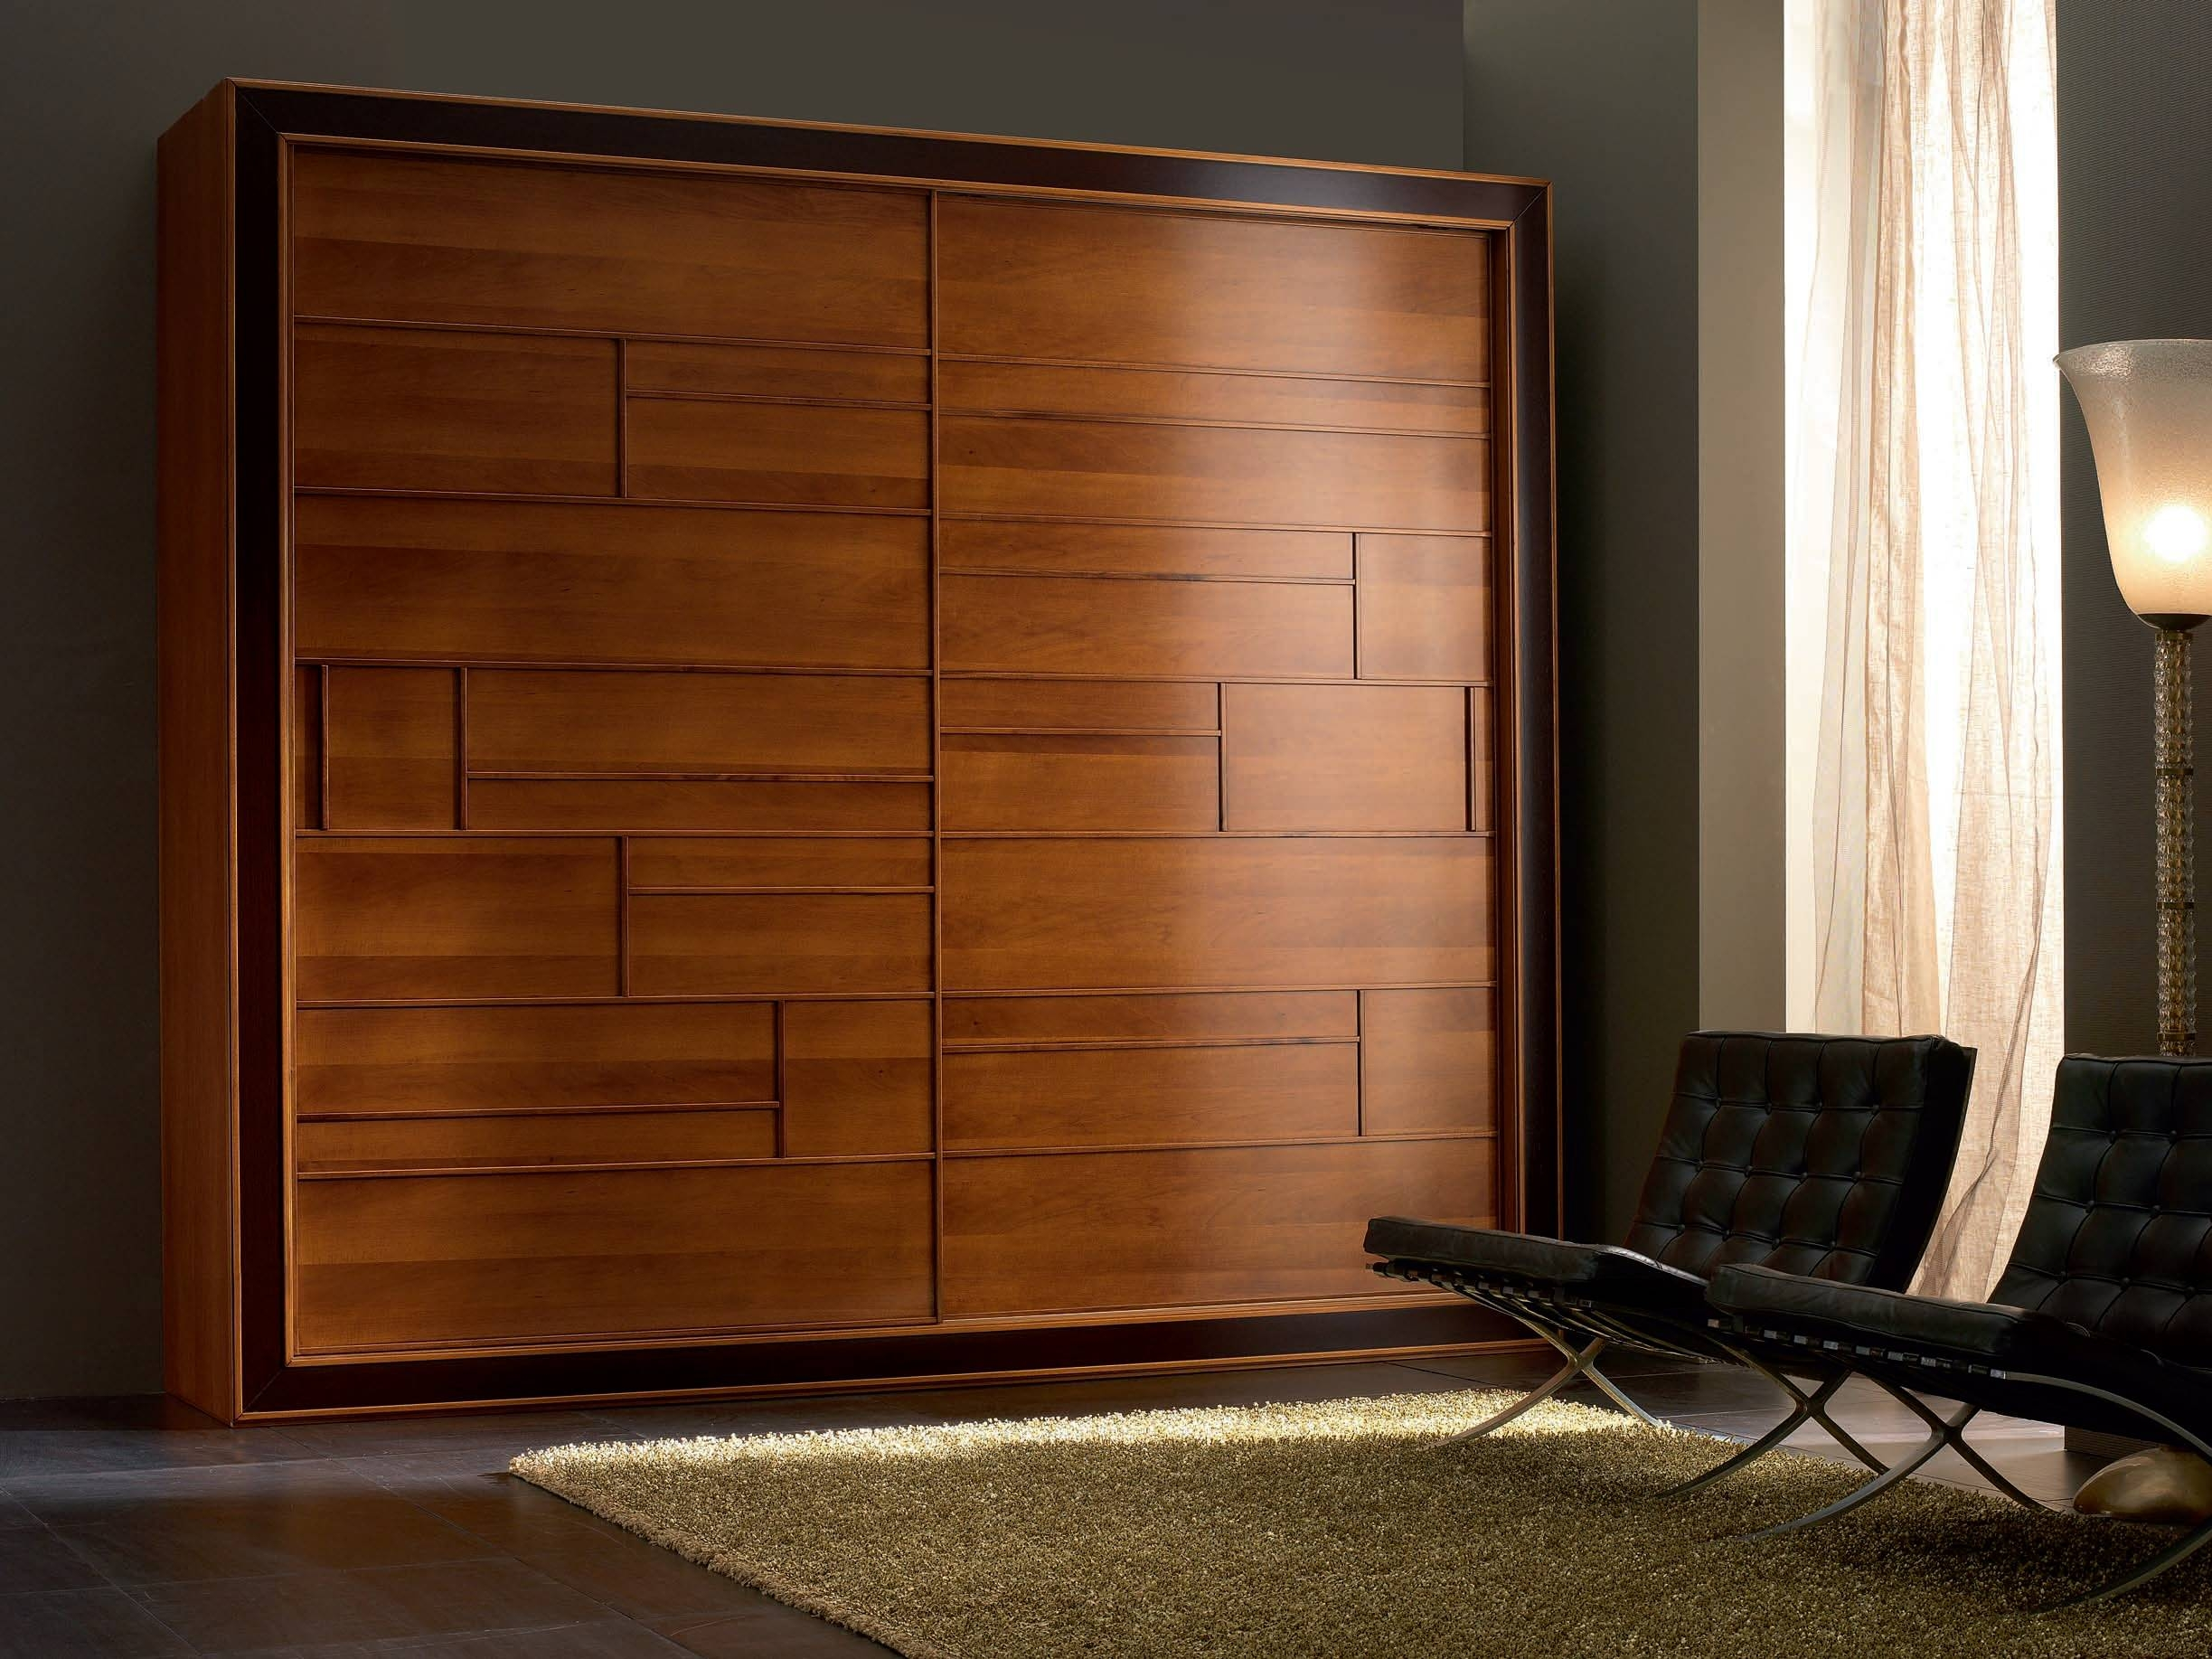 Walnut Wardrobes | Archiproducts intended for Walnut Wardrobes (Image 14 of 15)